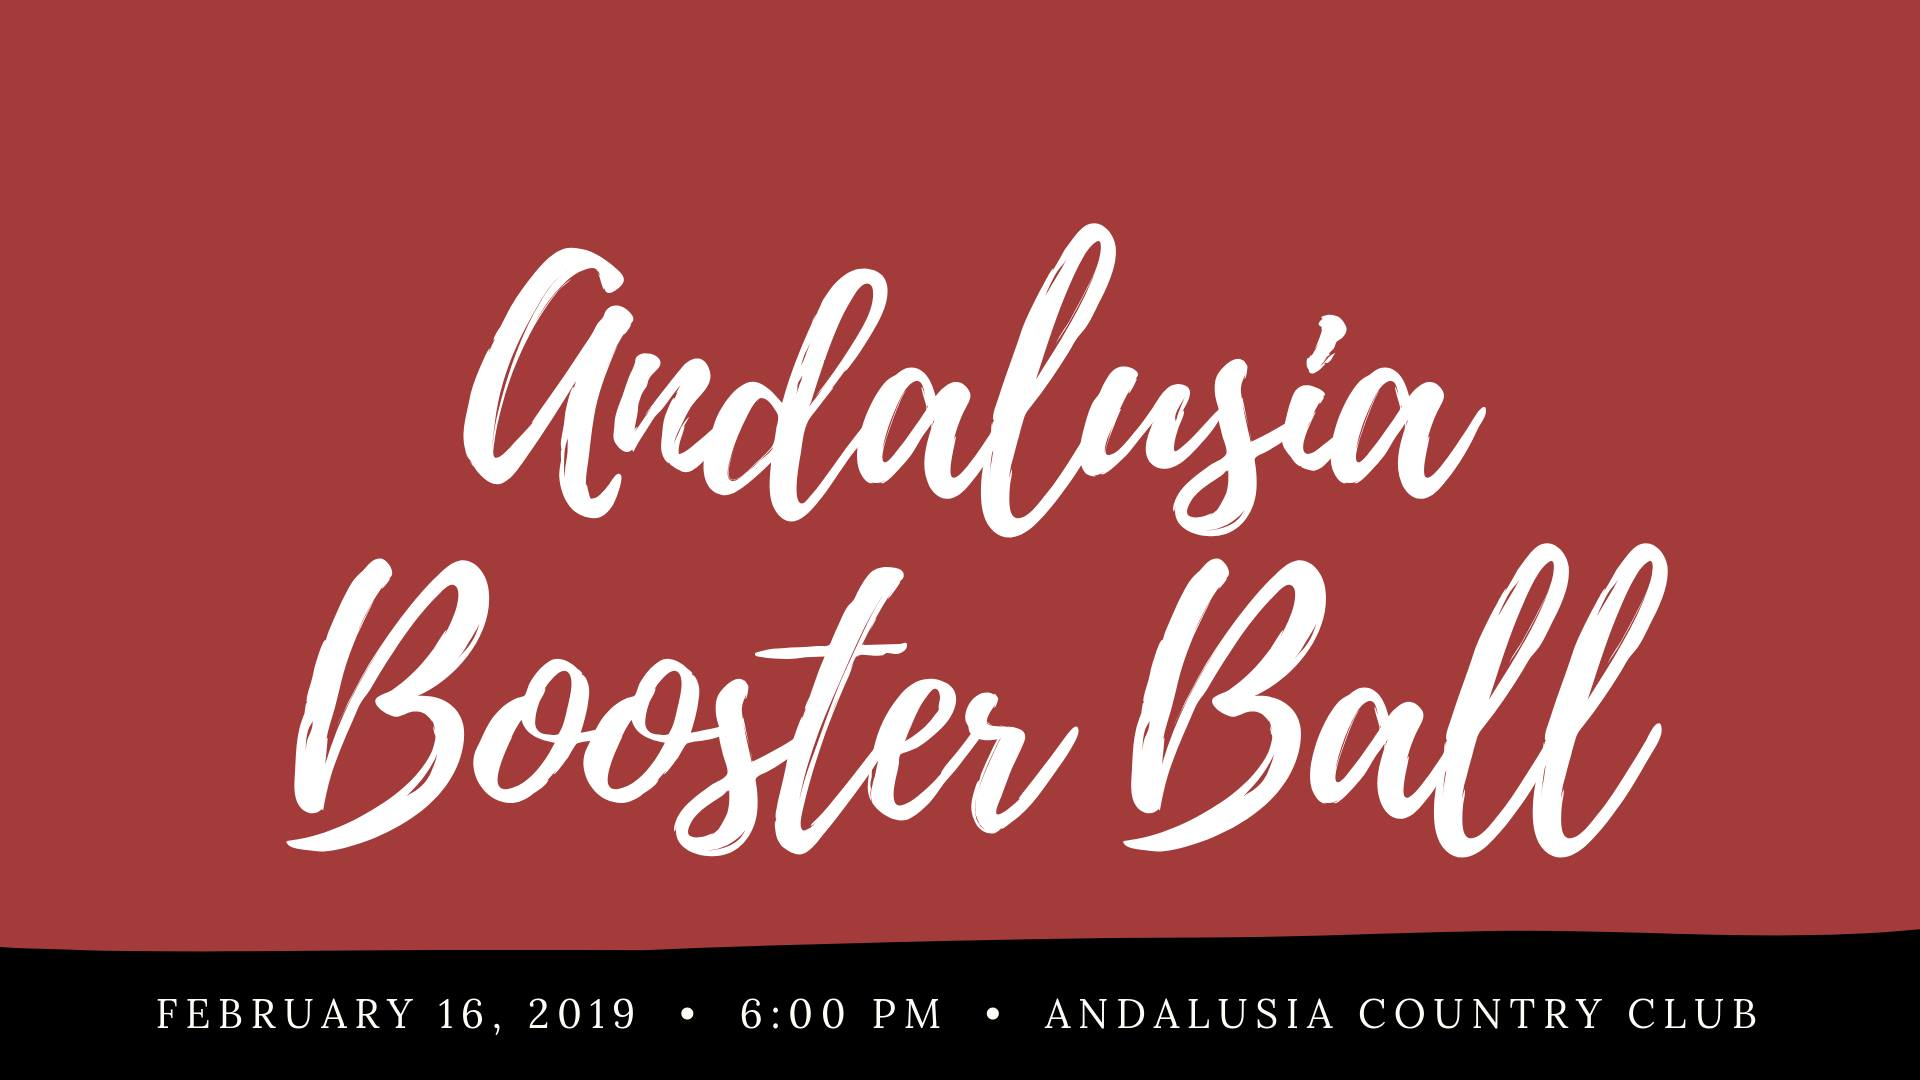 20190216 Andalusia Booster Ball